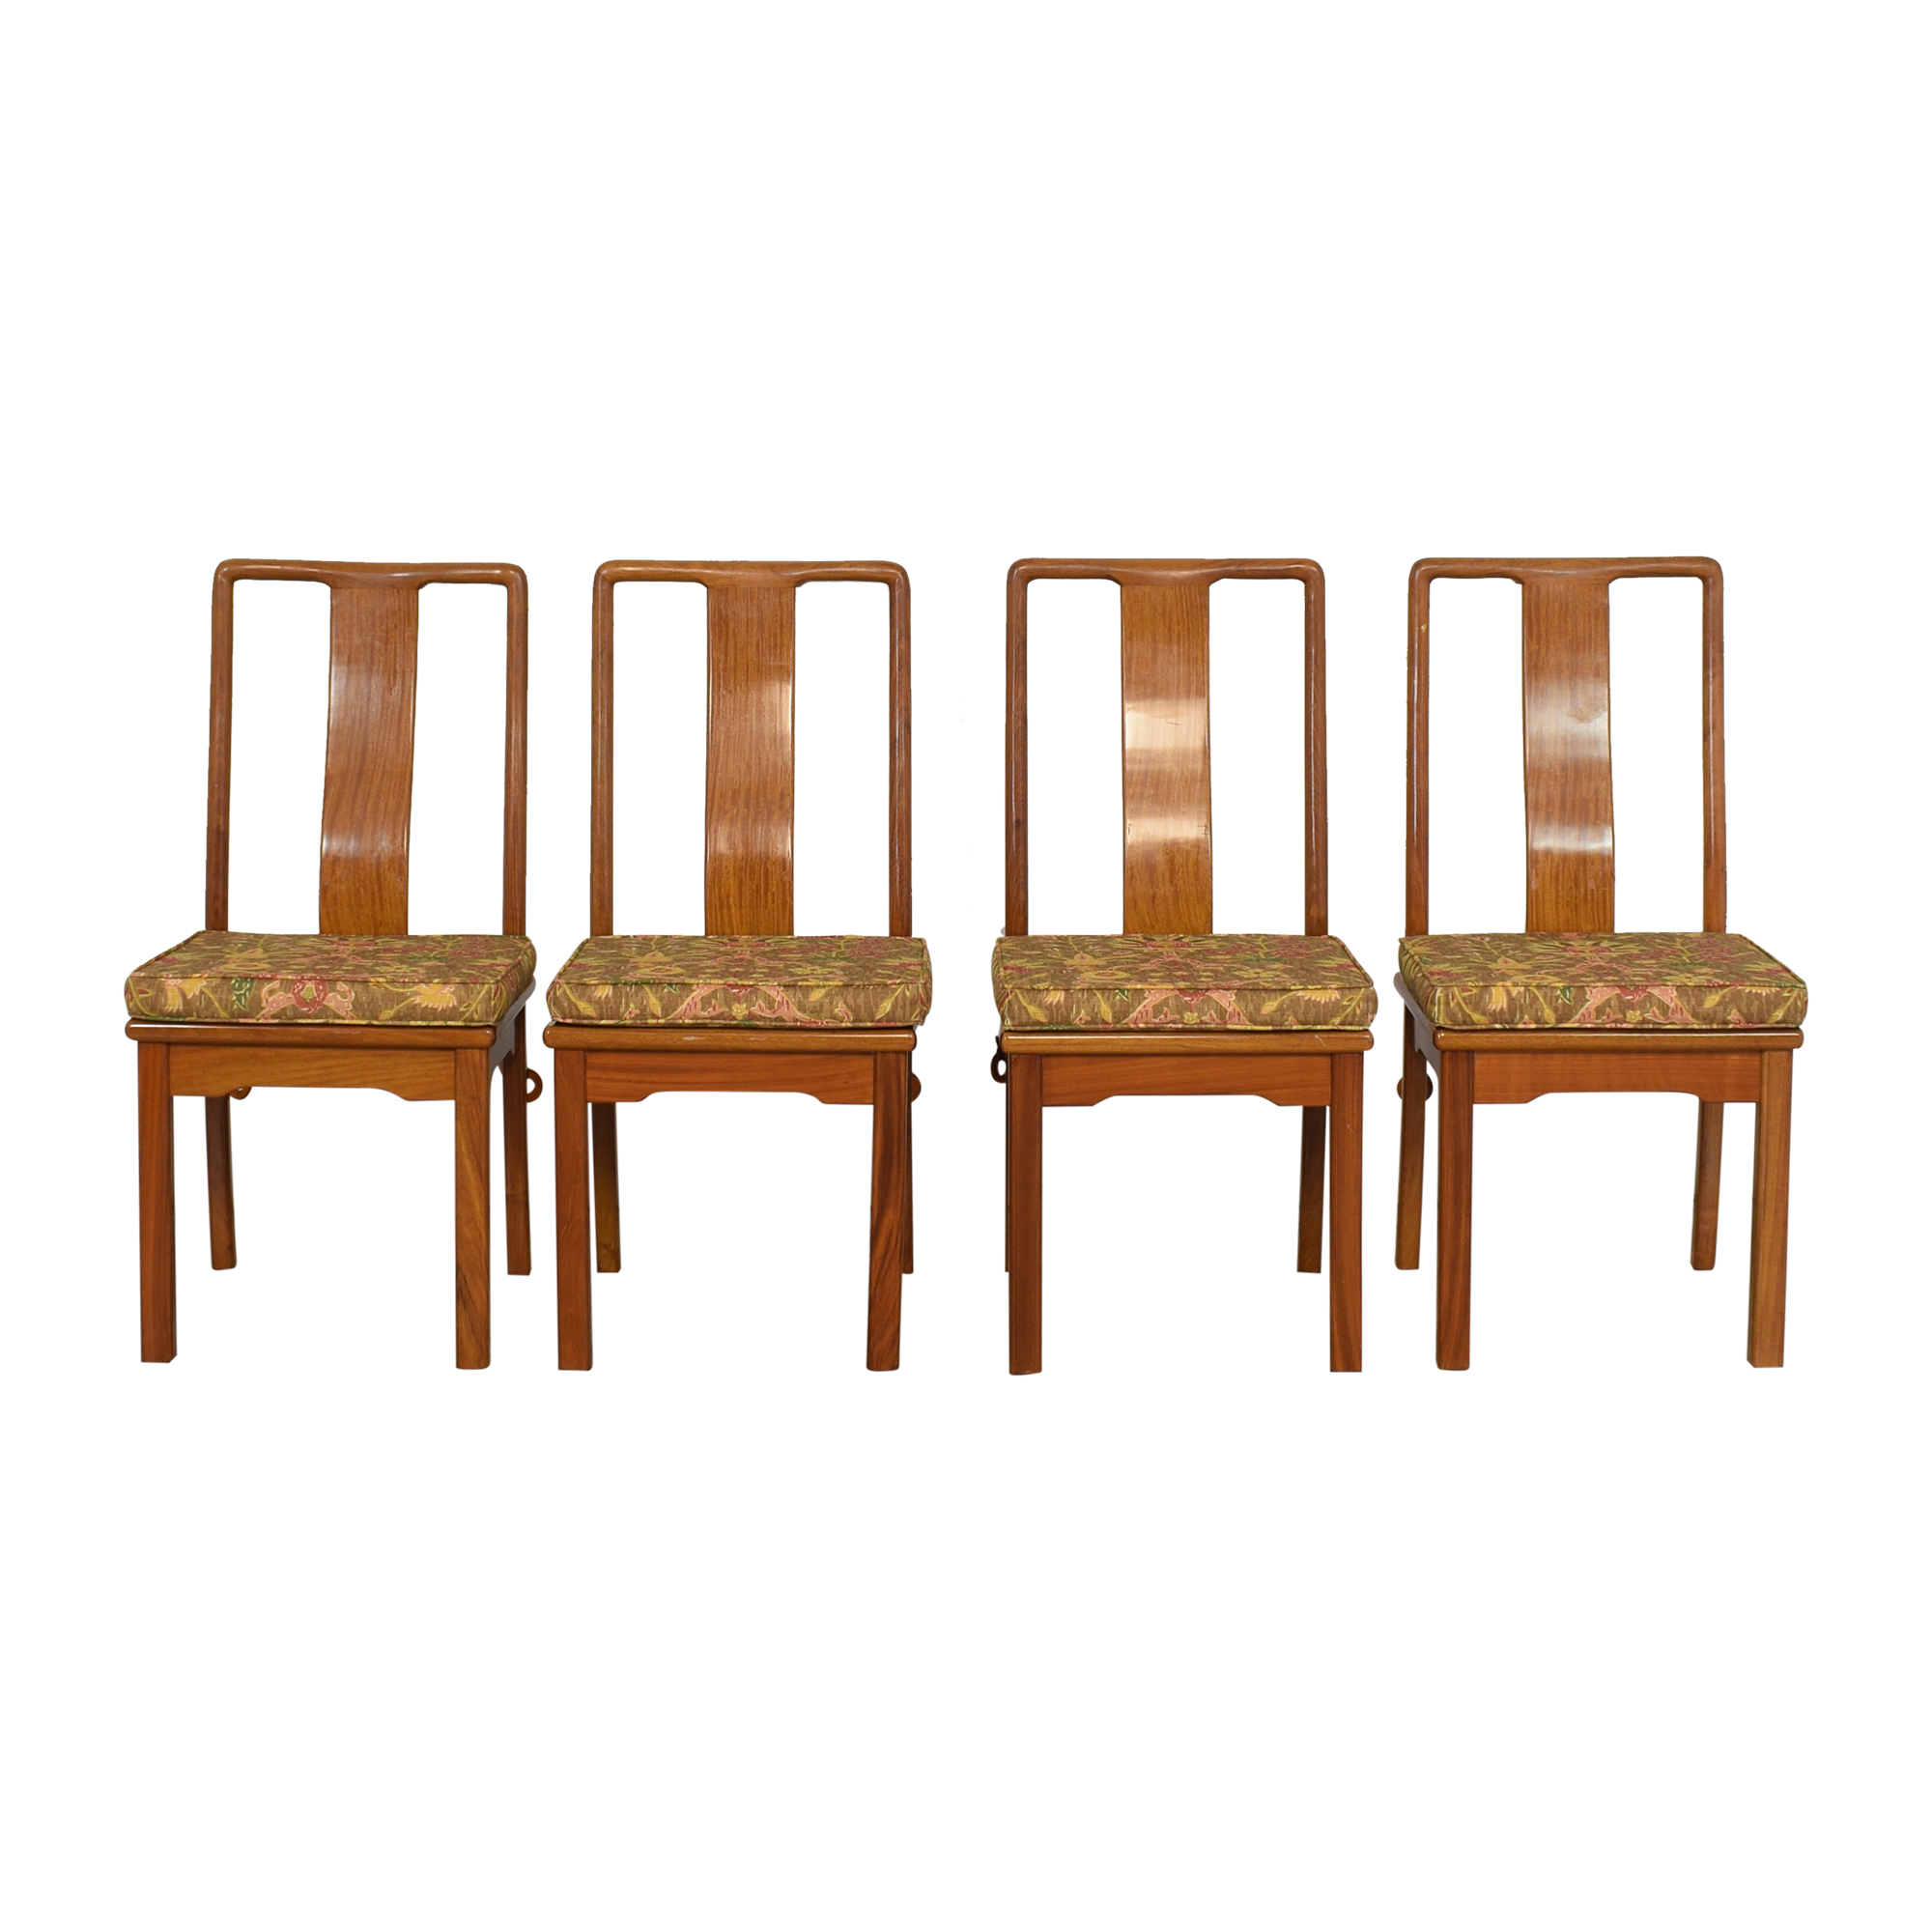 Cushioned Dining Chairs / Chairs